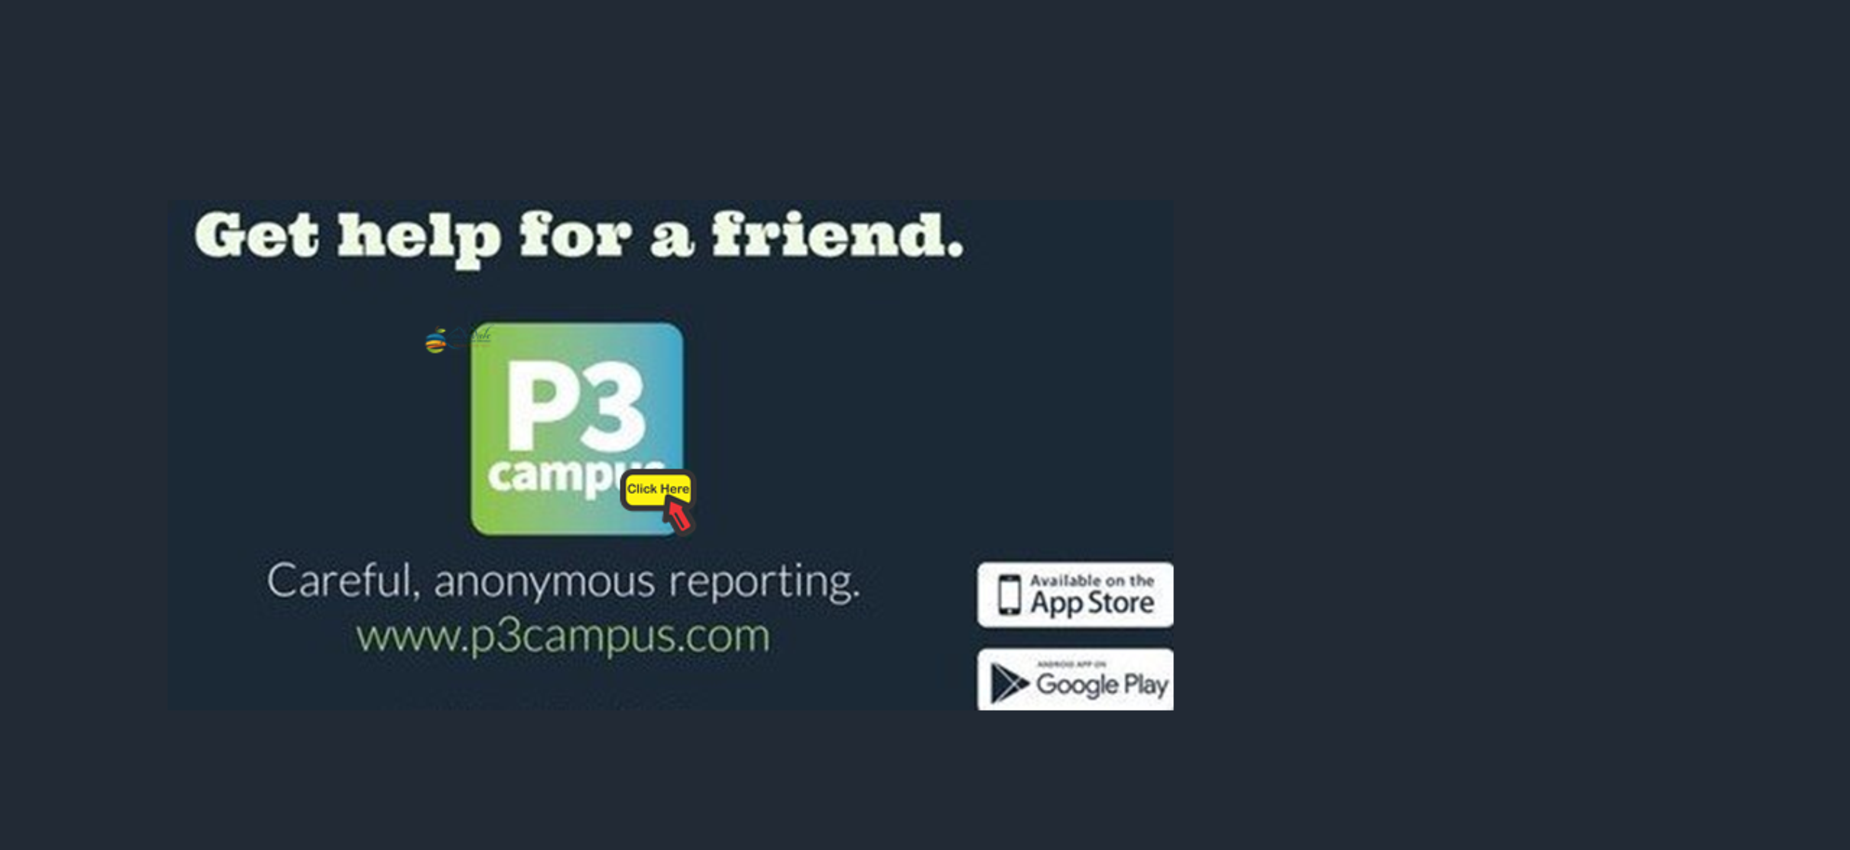 P3 Campus Anonymous Tip Reporting Service